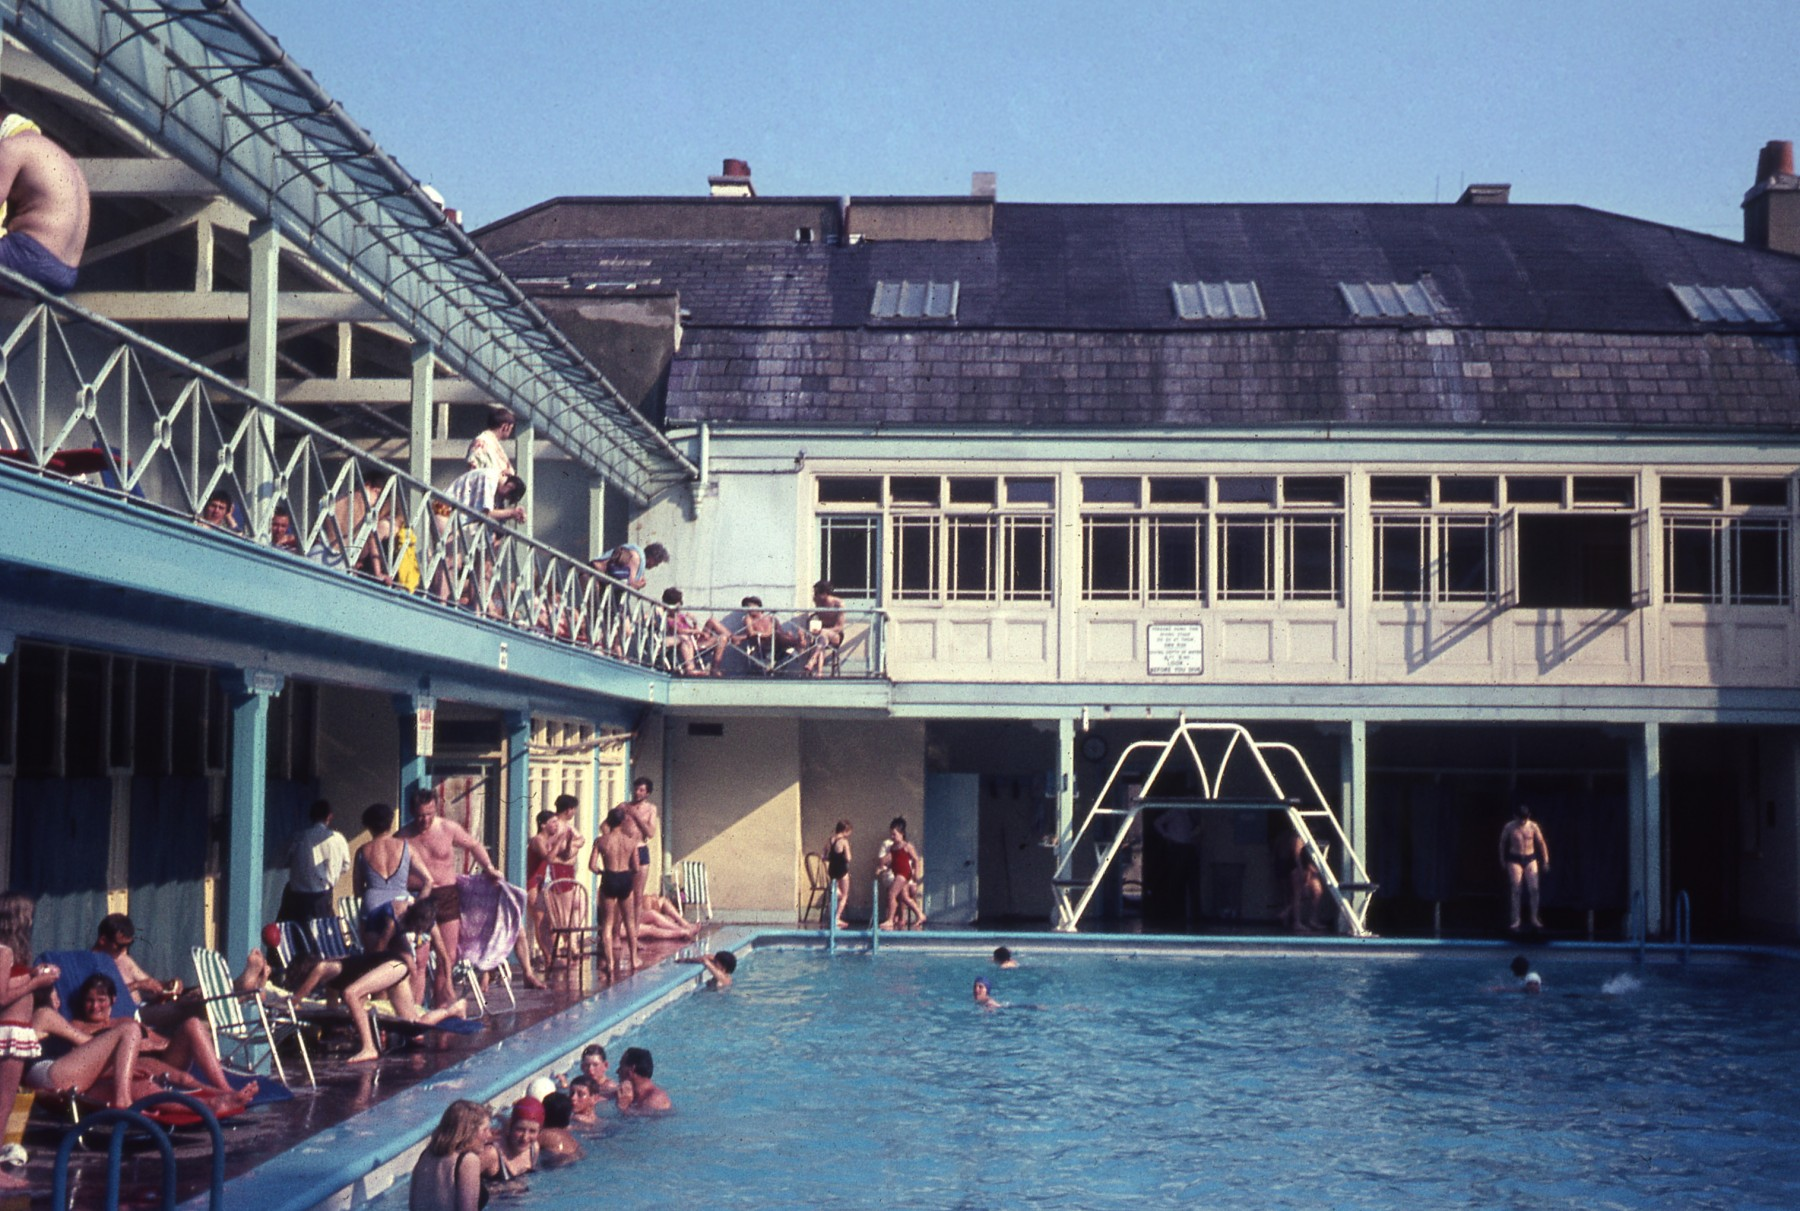 Bristol Lido opened in Clifton in 1849